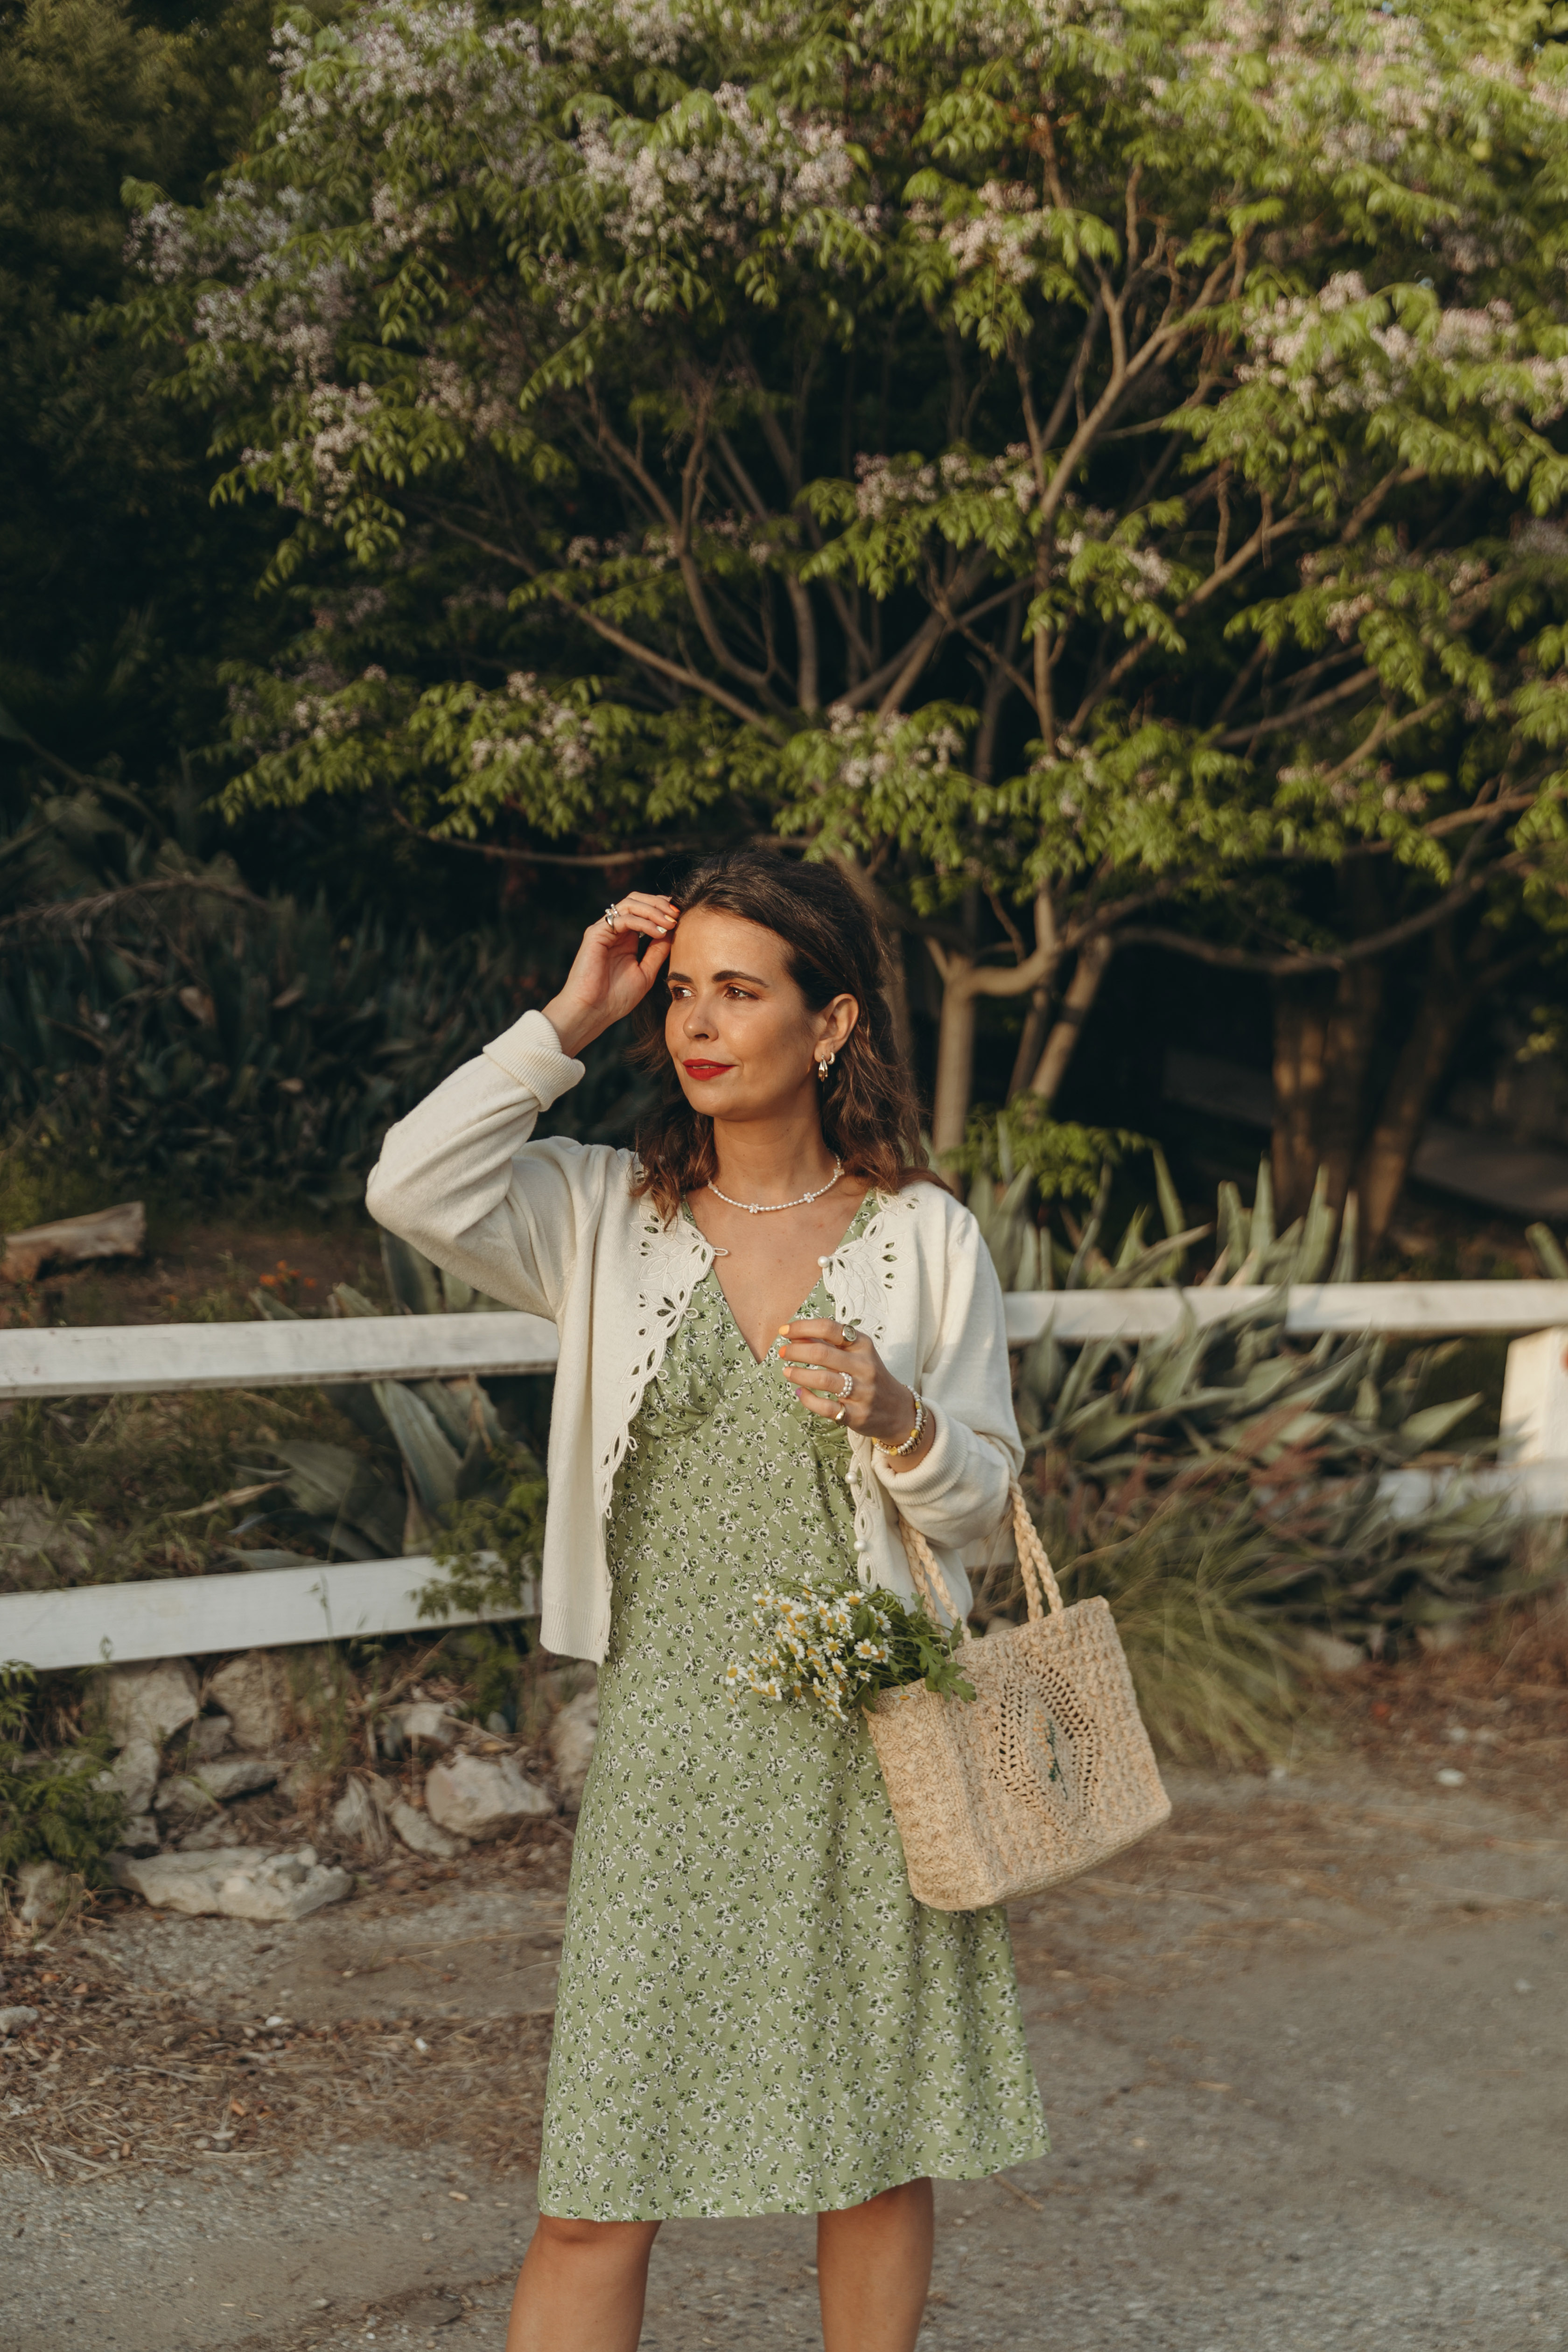 Sara from Collage Vintage wearing a Rouje spring dress, basket bag and high-heels sandals